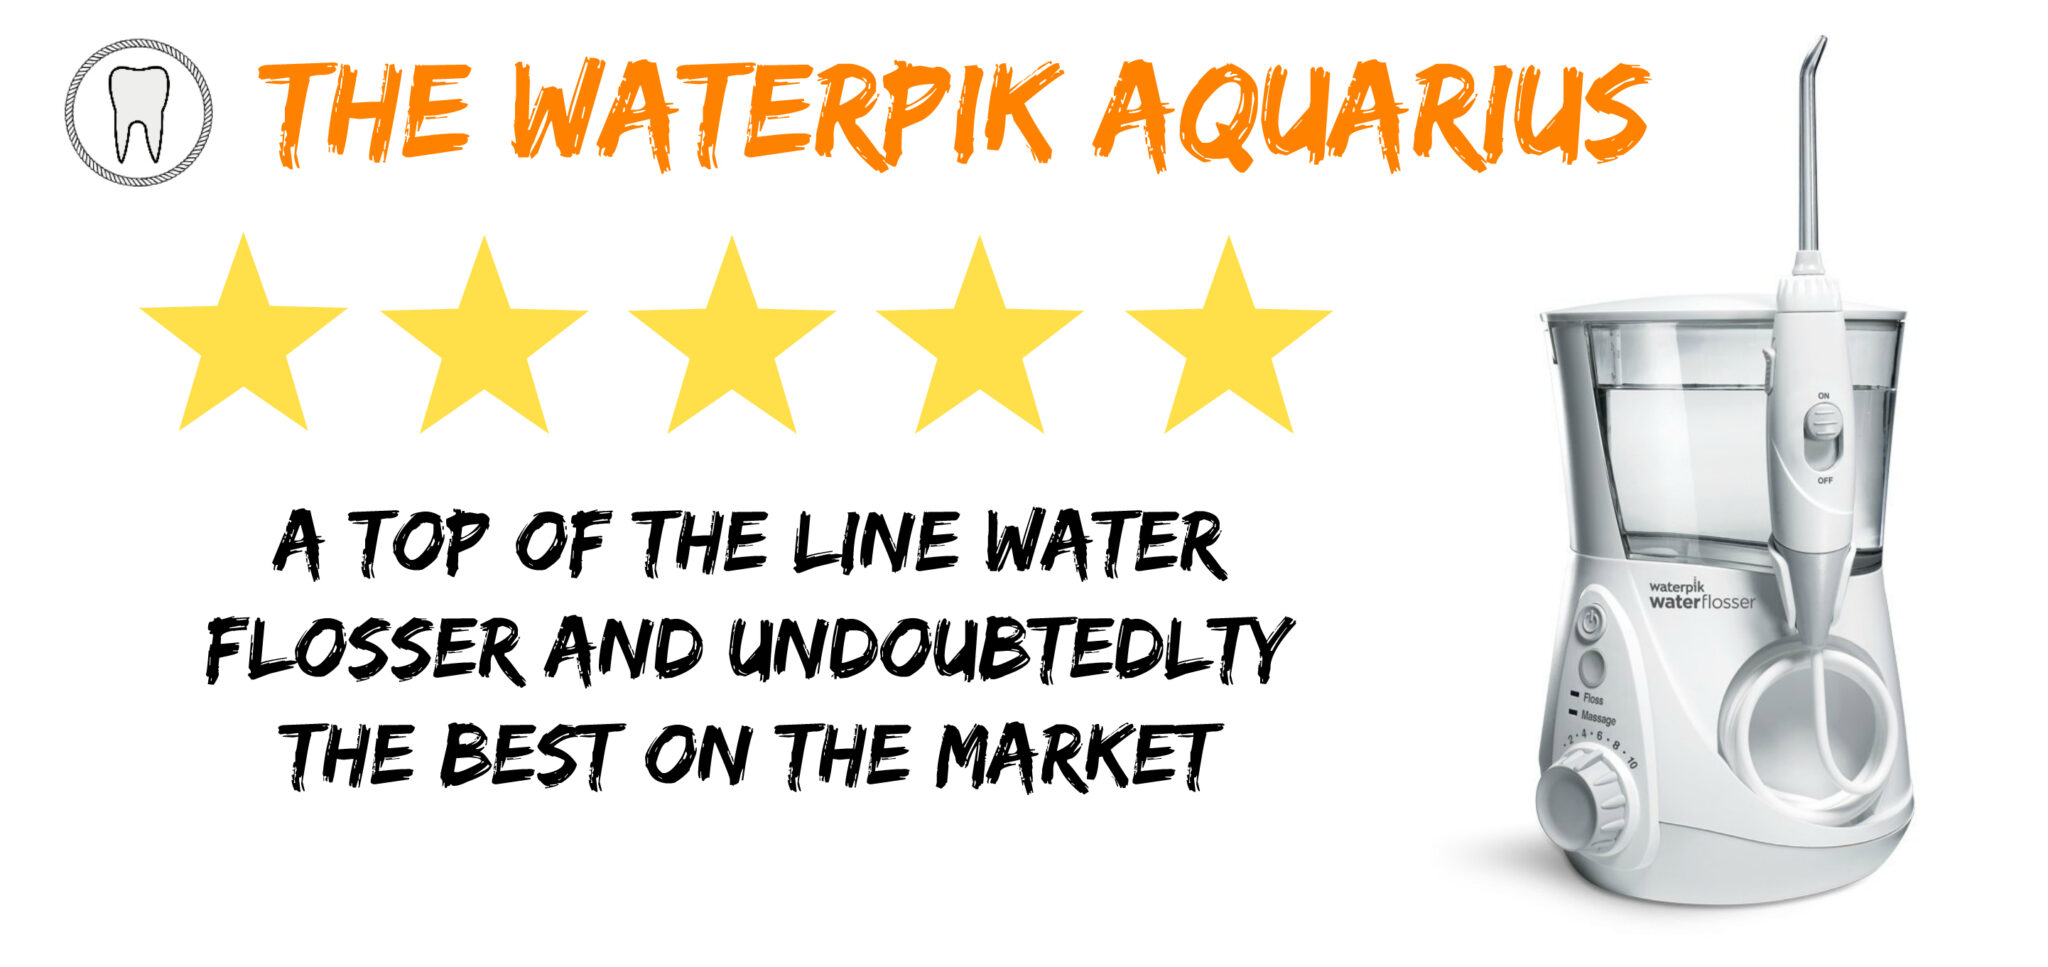 waterpik aquarius review